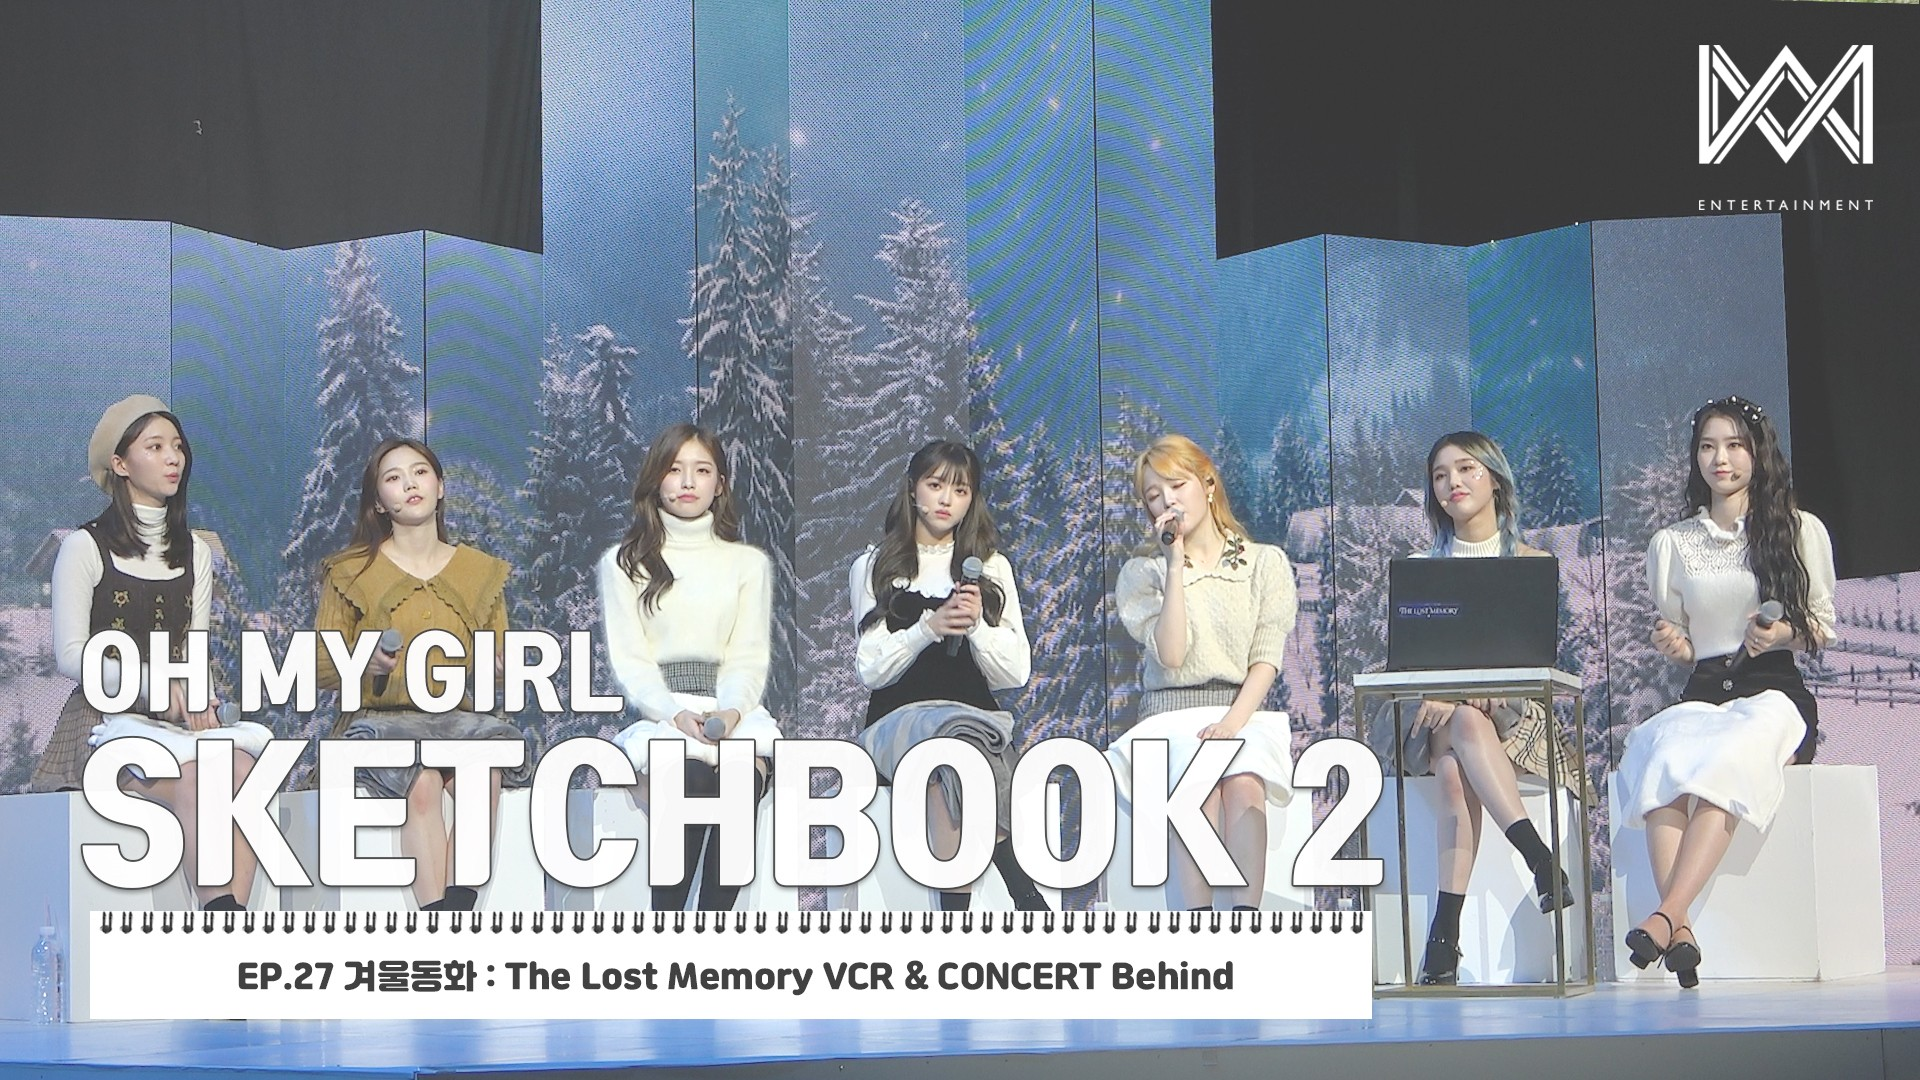 [OH MY GIRL SKETCHBOOK 2] EP.27 겨울동화 : The Lost Memory VCR & CONCERT Behind